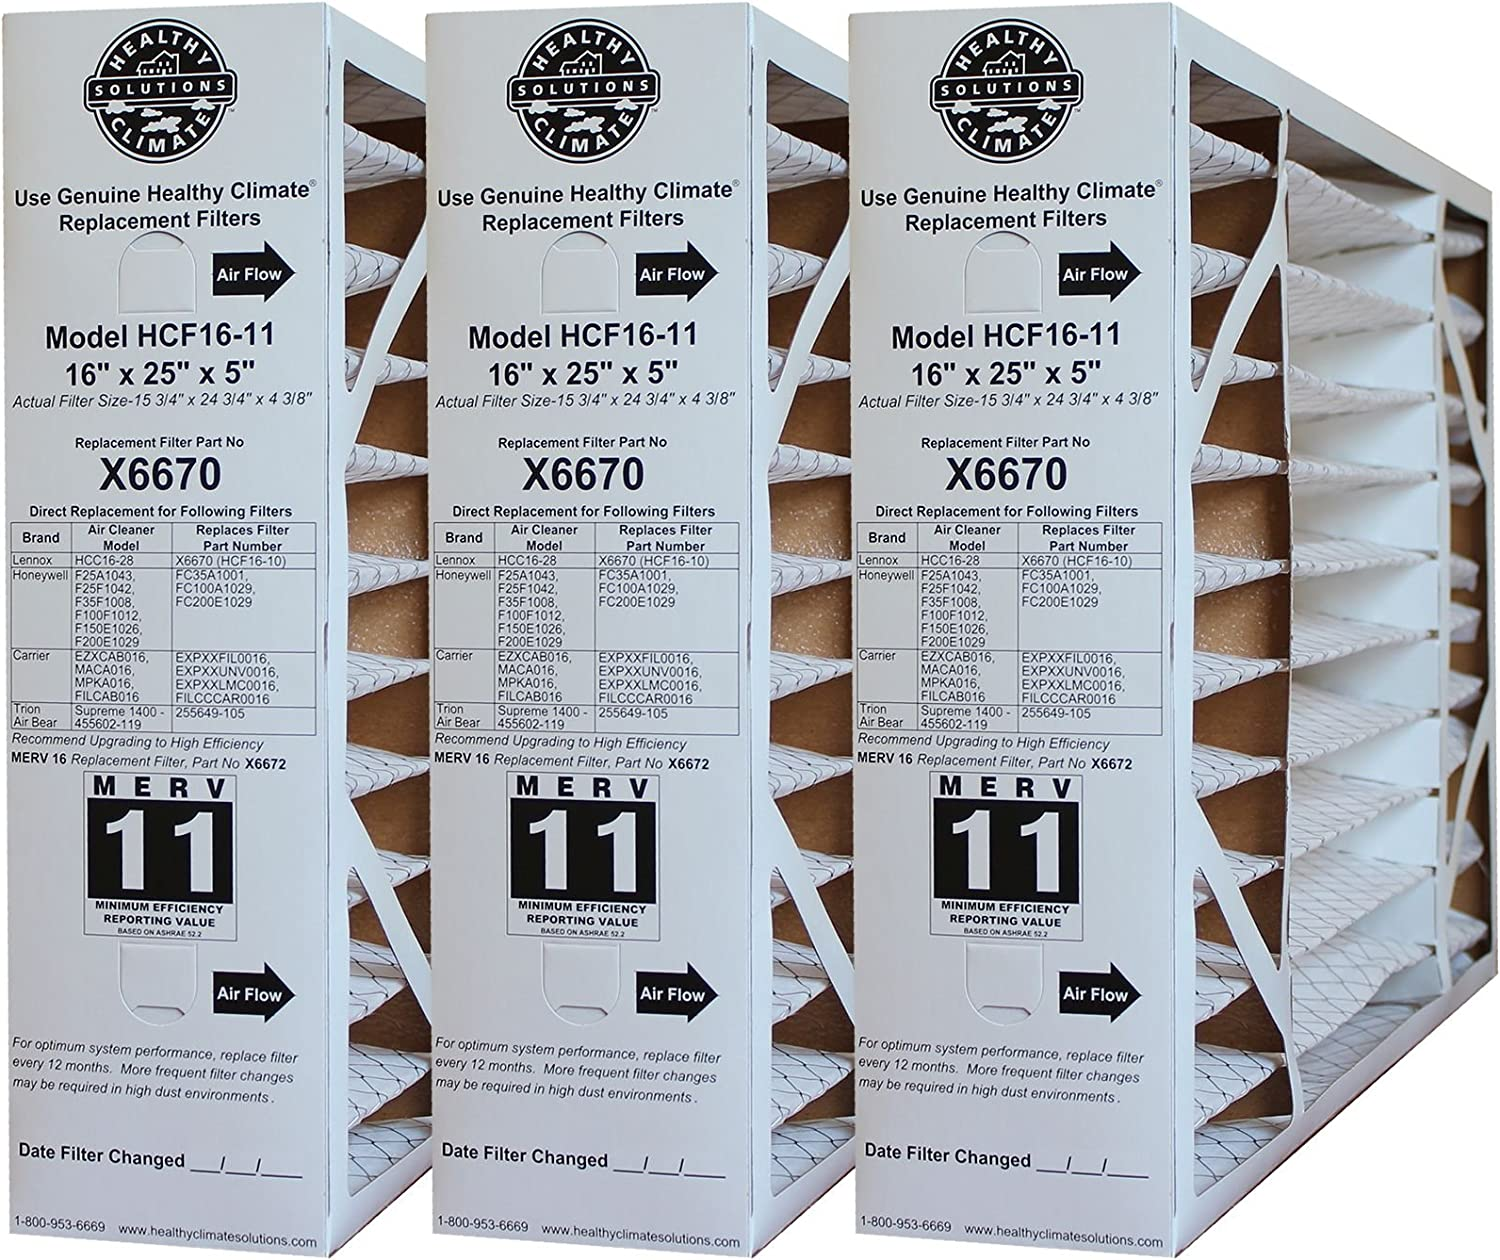 """Lennox X6670 MERV 11 Box Replacement Filter also for Honeywell, 16"""" H x 25"""" L x 5"""" W (3-Pack)"""